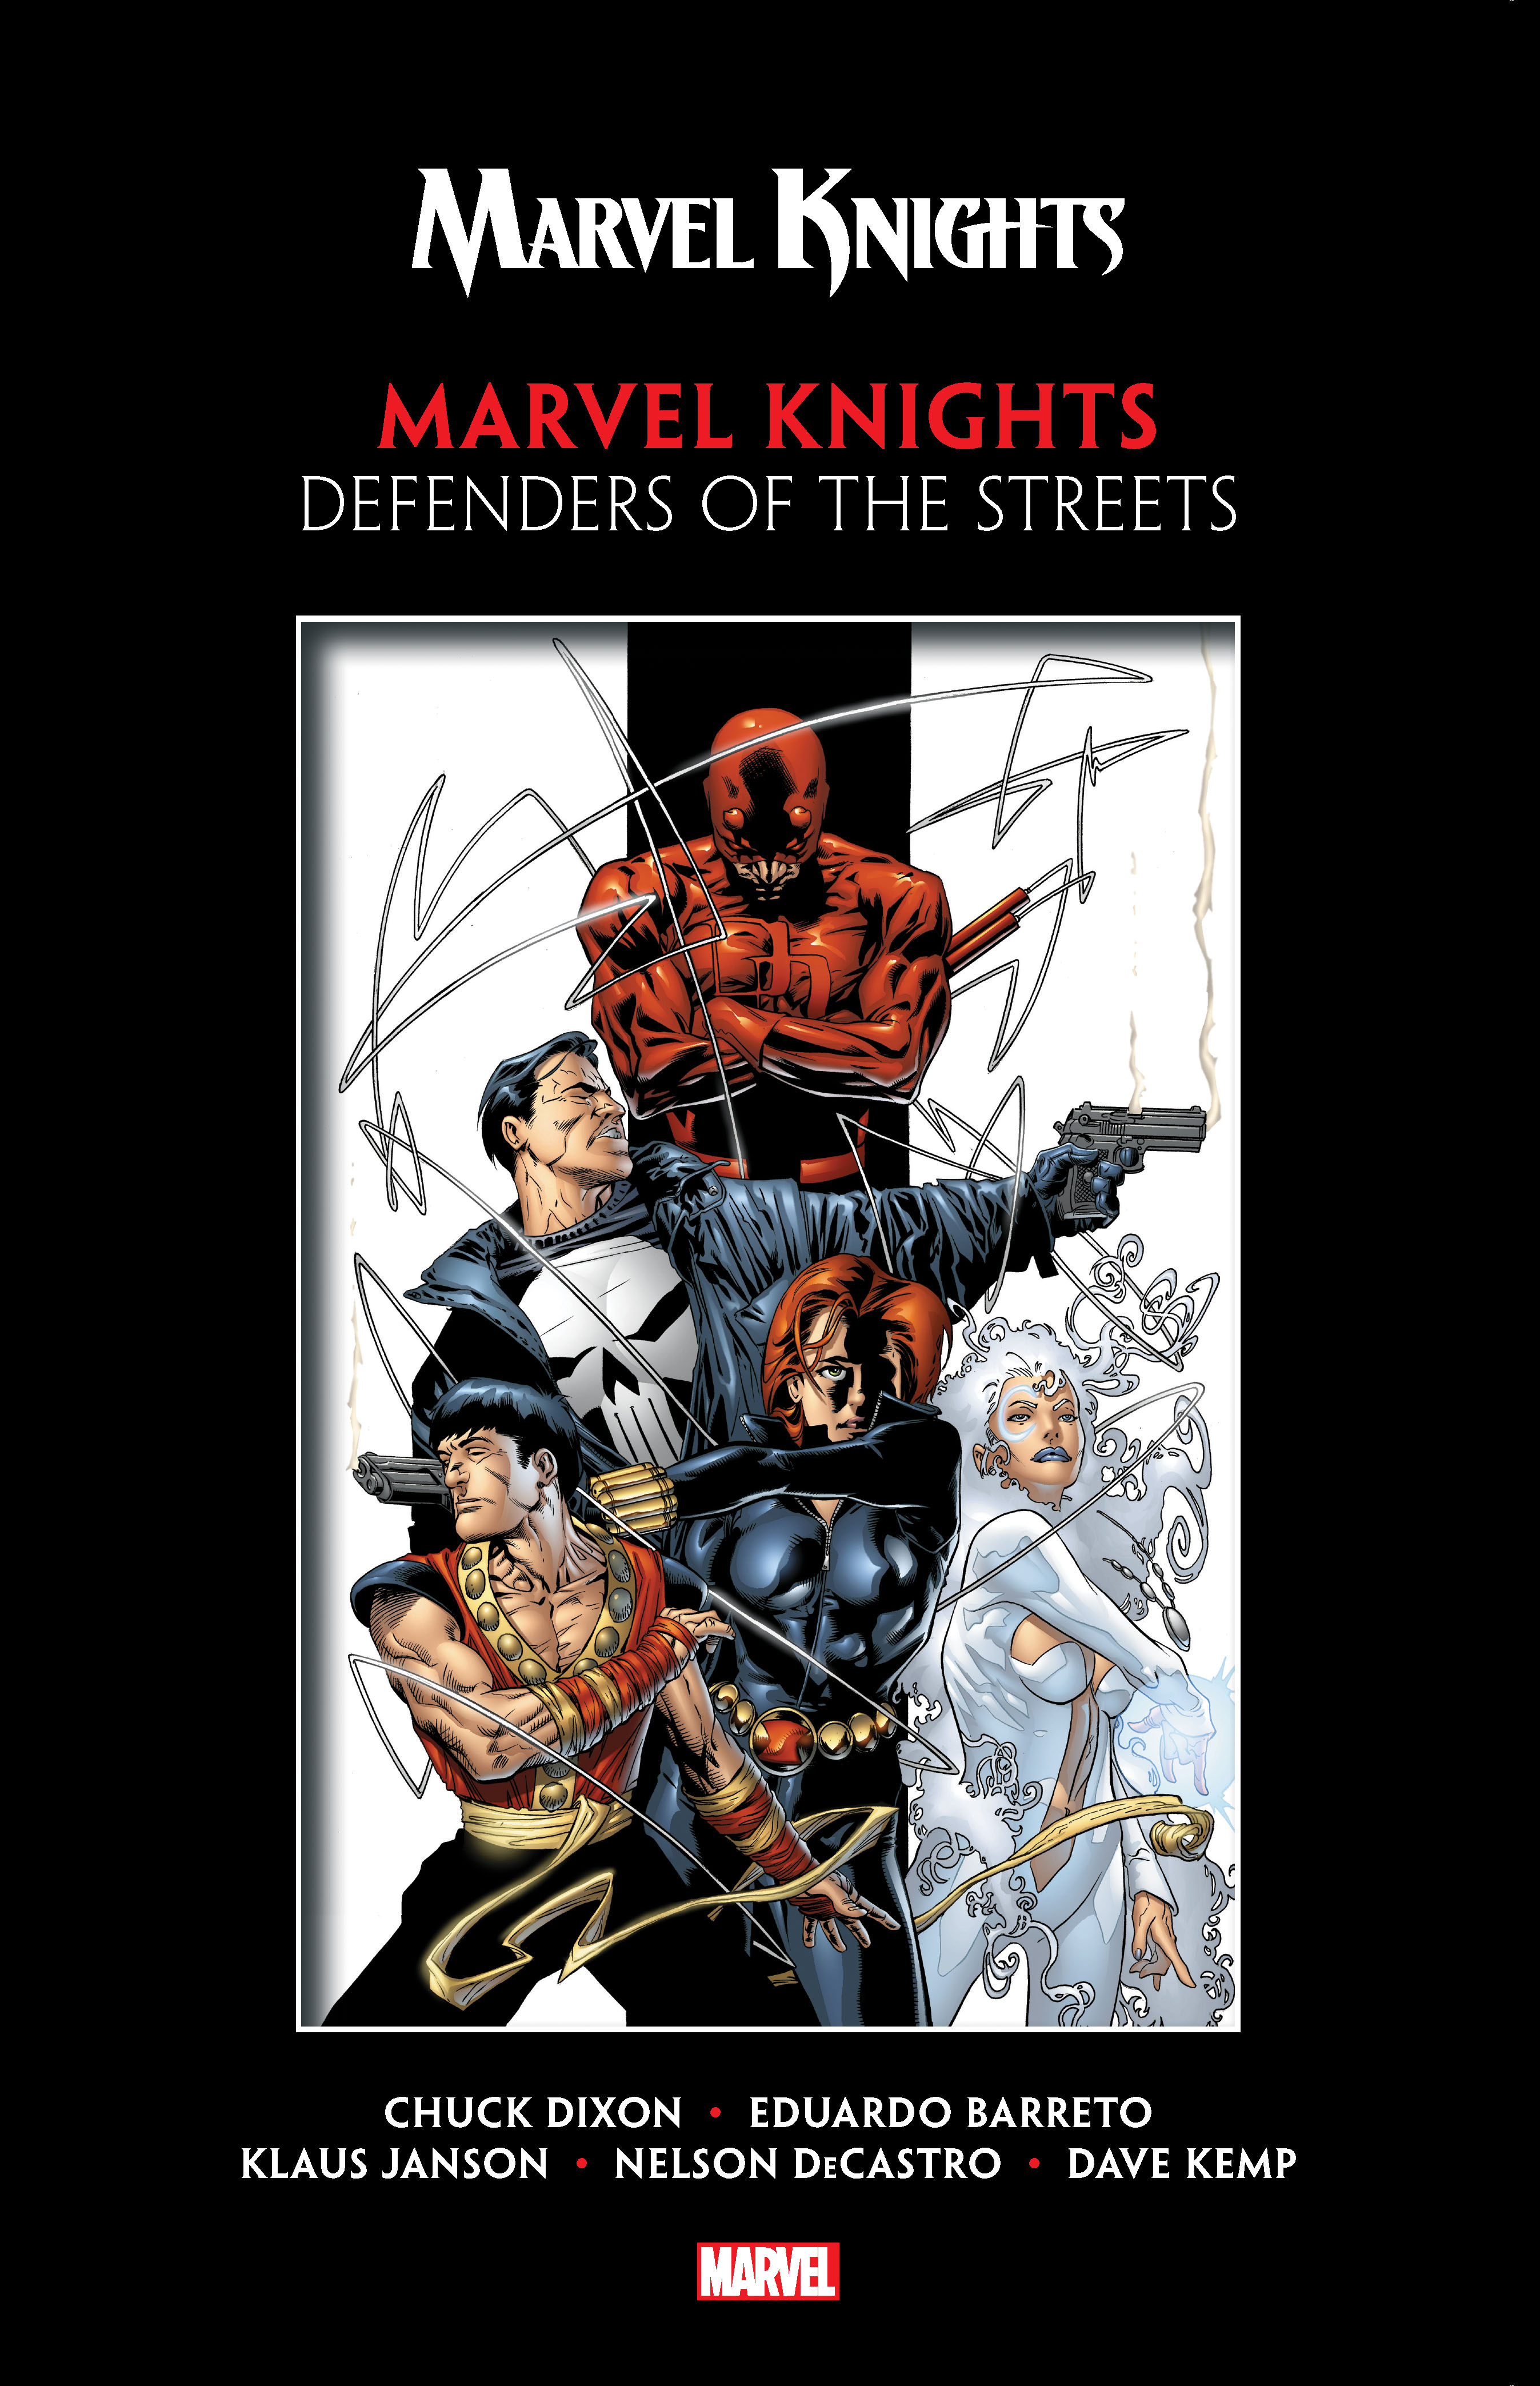 Marvel Knights by Dixon & Barreto: Defenders of the Streets (Trade Paperback)